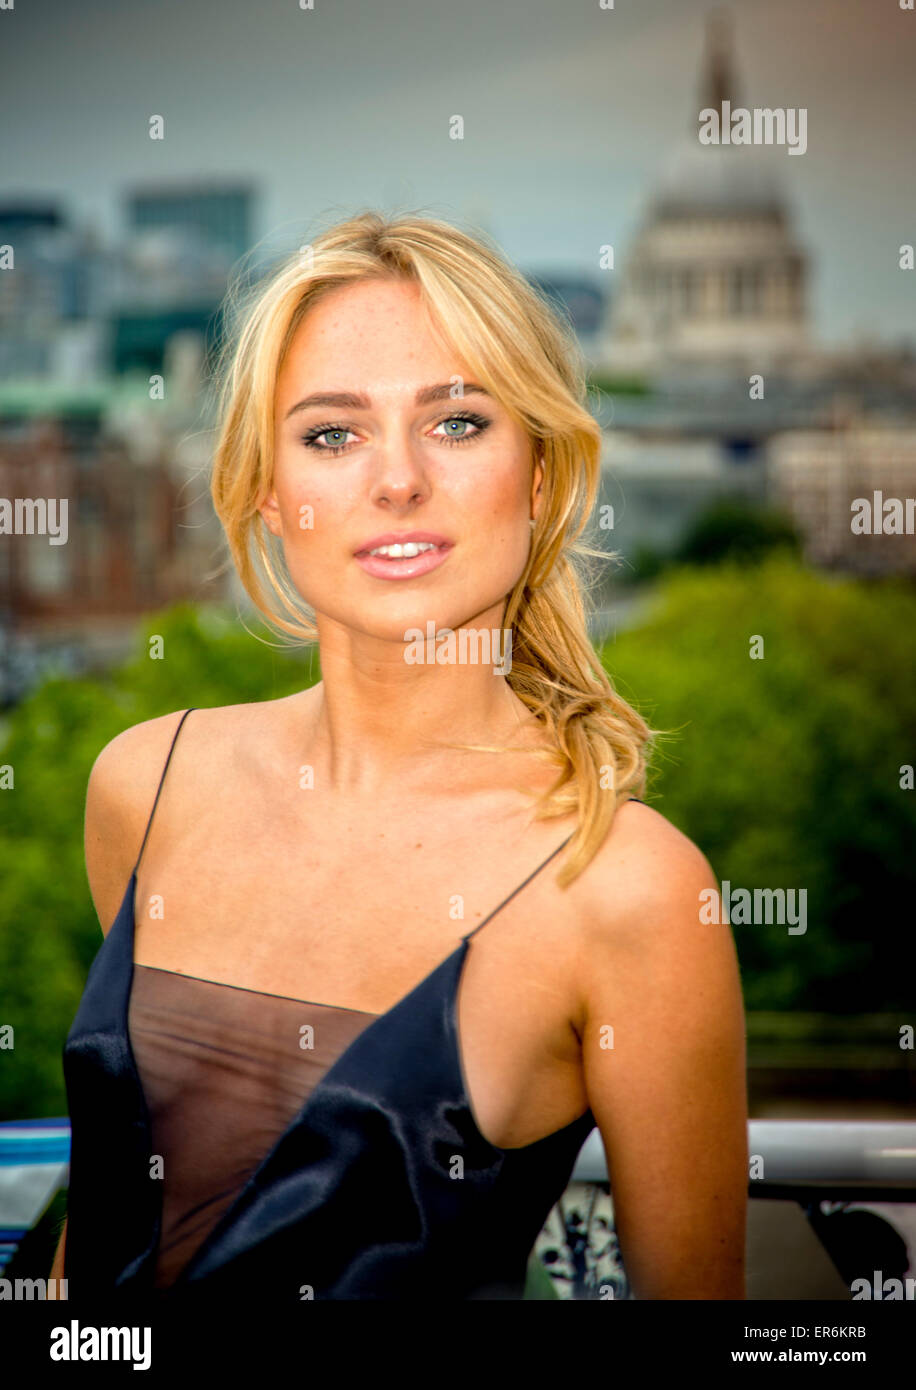 Closet Re Brand Party  London 27th May 2015 Kimberley Garner attending the 'Closet London Re-Brand Party' 27th May - Stock Image